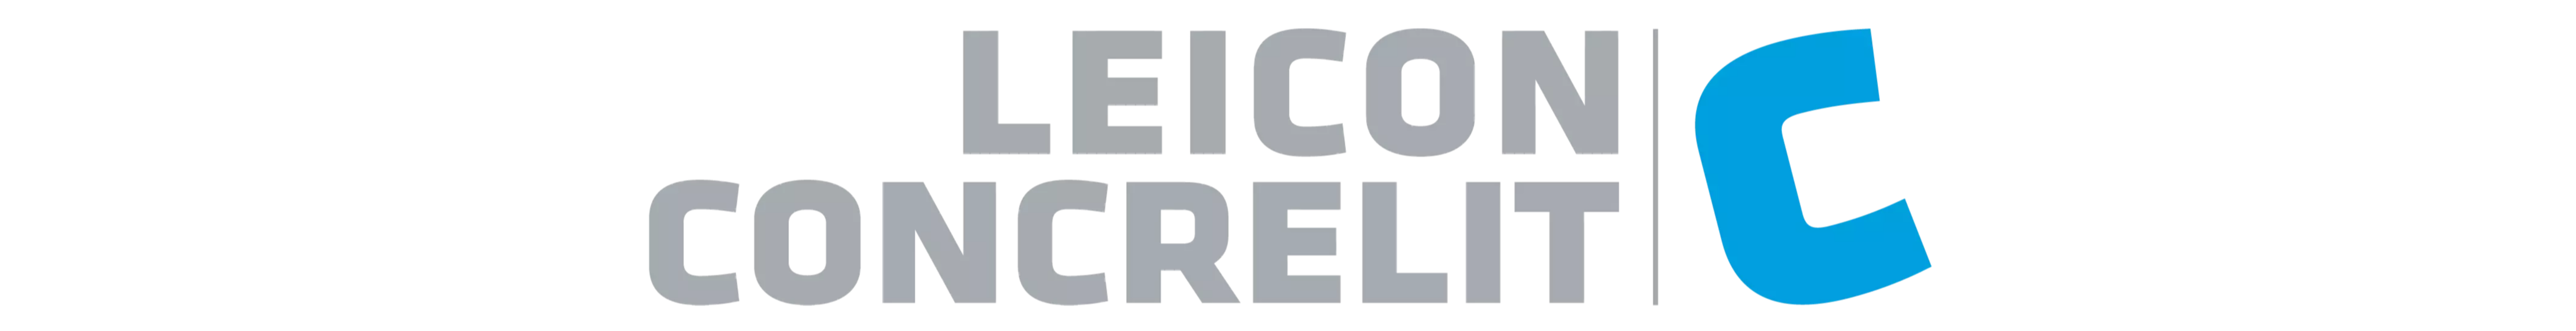 Leicon / Concrelit